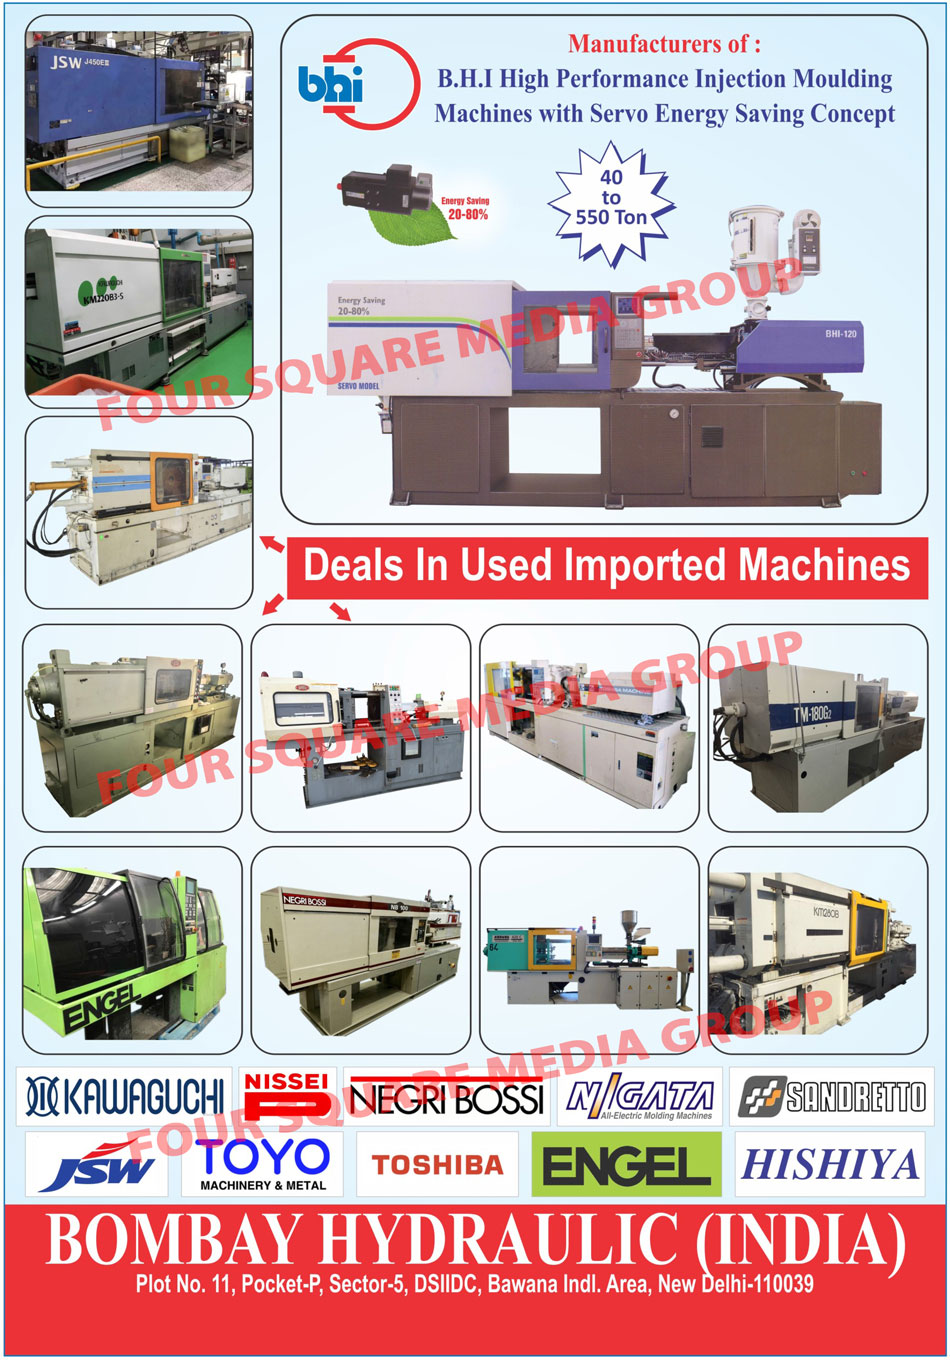 Servo Motor Injection Moulding Machines, Variable Pump Injection Moulding Machines, Micro Processor Control Fix Pump With PQ Valve Machines, E Series Injection Moulding Machines, Clamping Vertical Type Special Purpose Insert Moulding Machines, Injection Horizontal Type Special Purpose Insert Moulding Machines,Displacement Pump, Insert Moldings, BHI Control Systems, Clamping Units, Injection Units